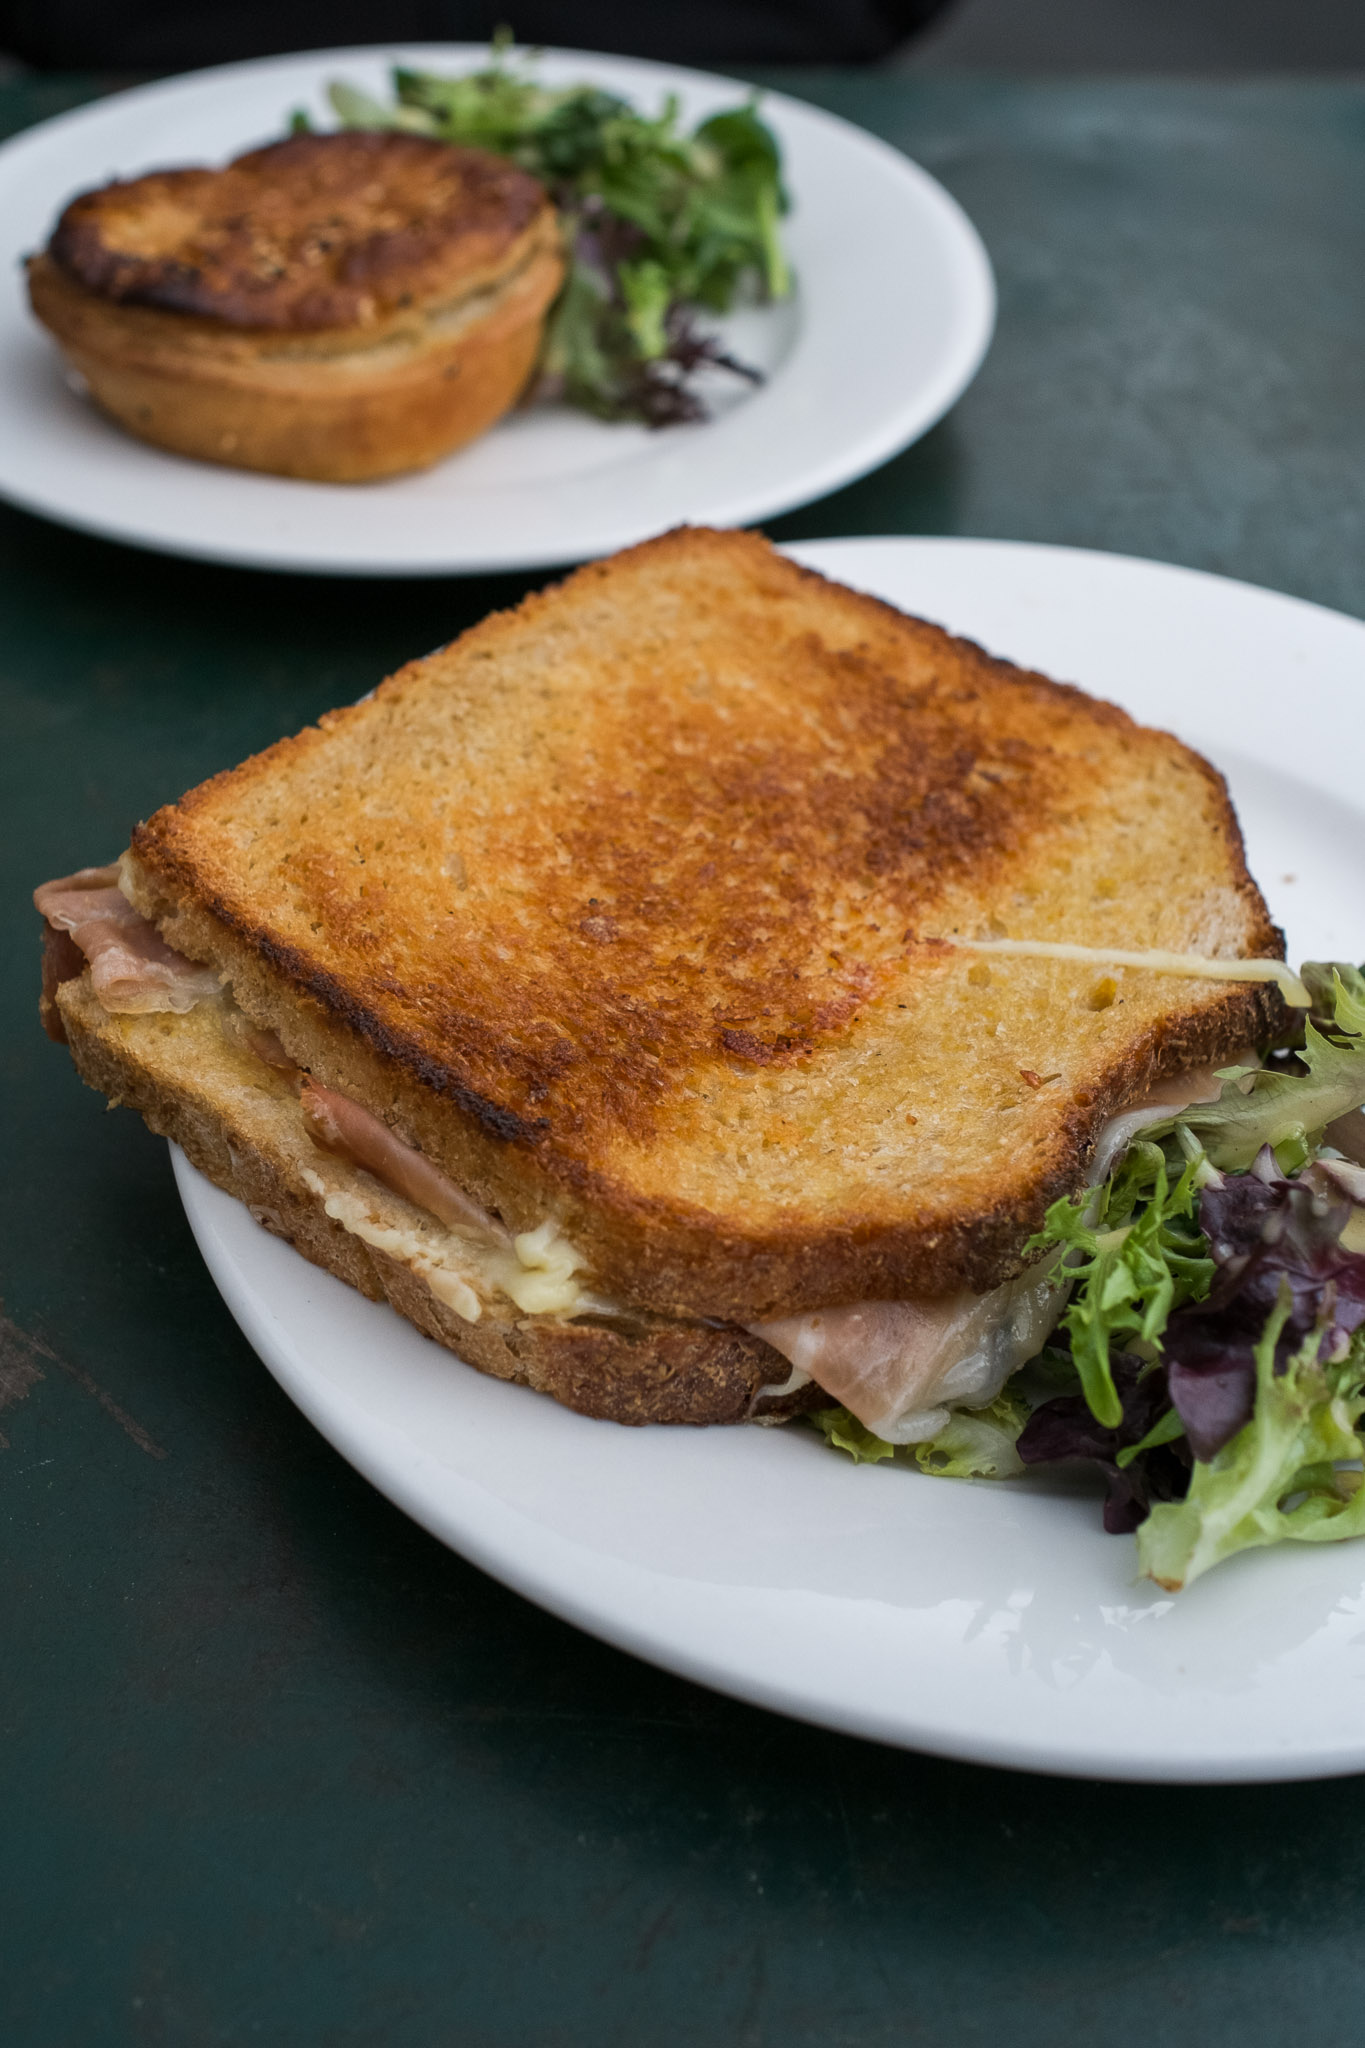 Ham and gruyere toasted sandwich